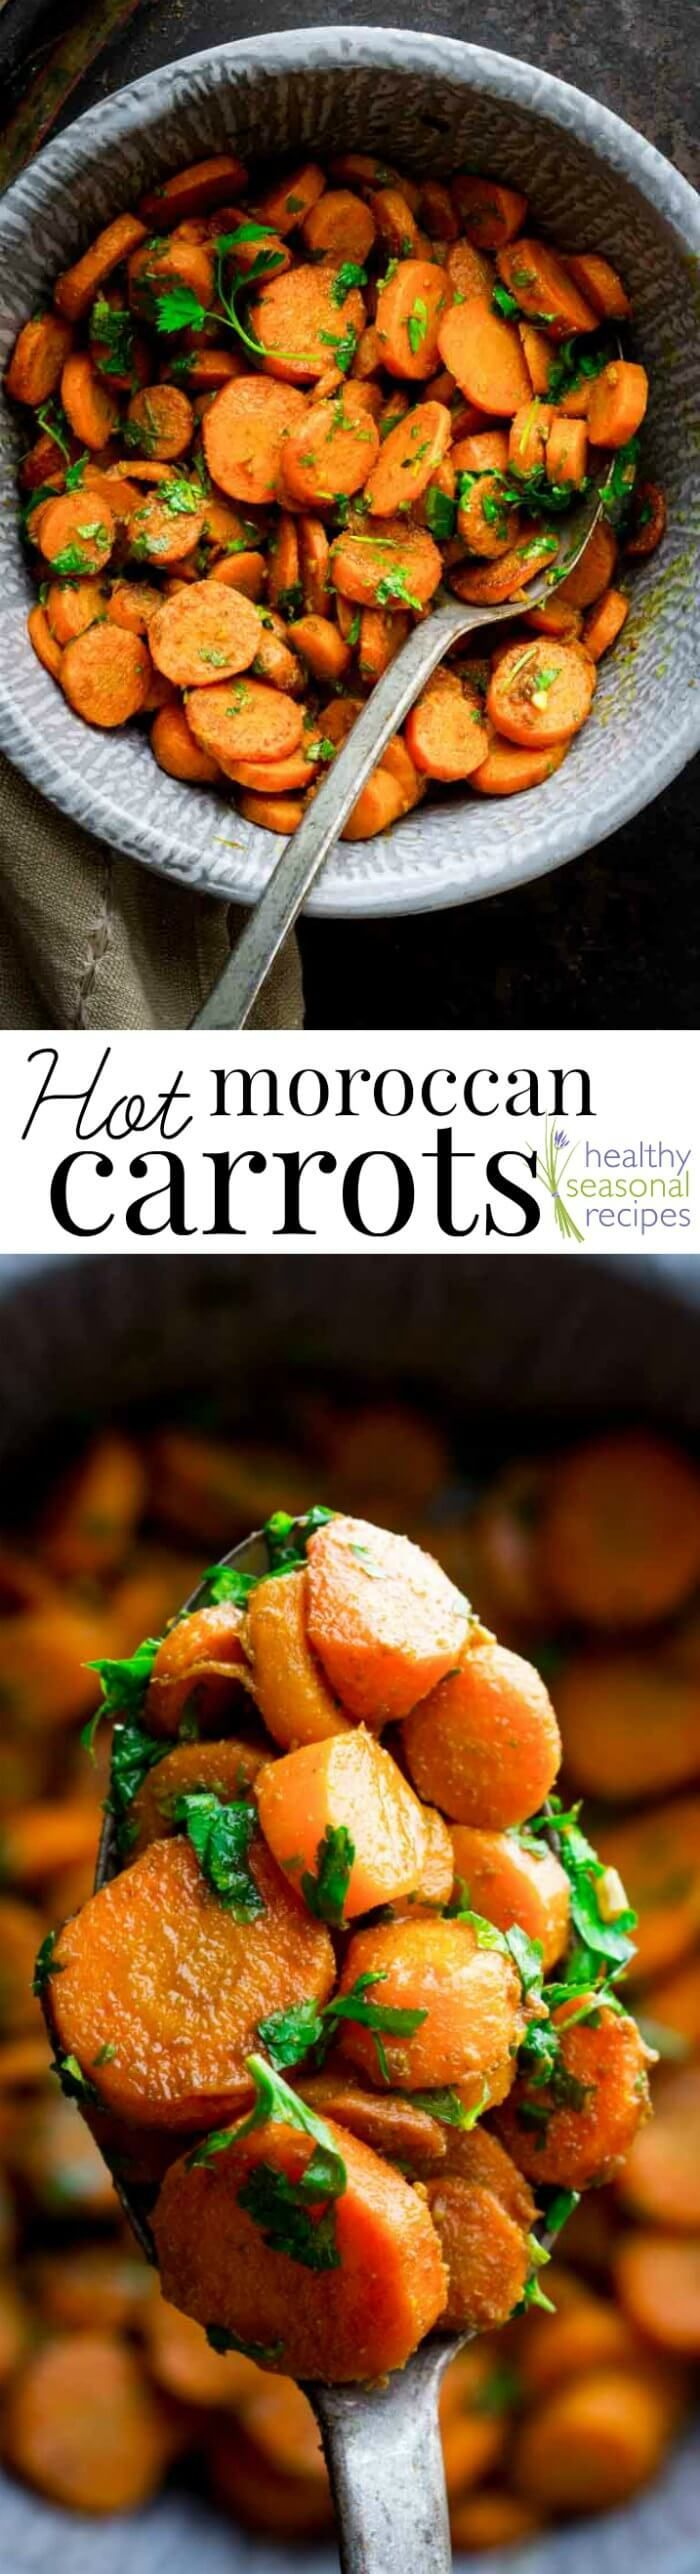 Hot Moroccan Carrots, with Cumin, Turmeric, Garlic and Lemon. Plus a ton of parsley. They are served hot right out of the skillet with a spicy kick from Harissa! By Healthy Seasonal Recipes /healthyseasonal/